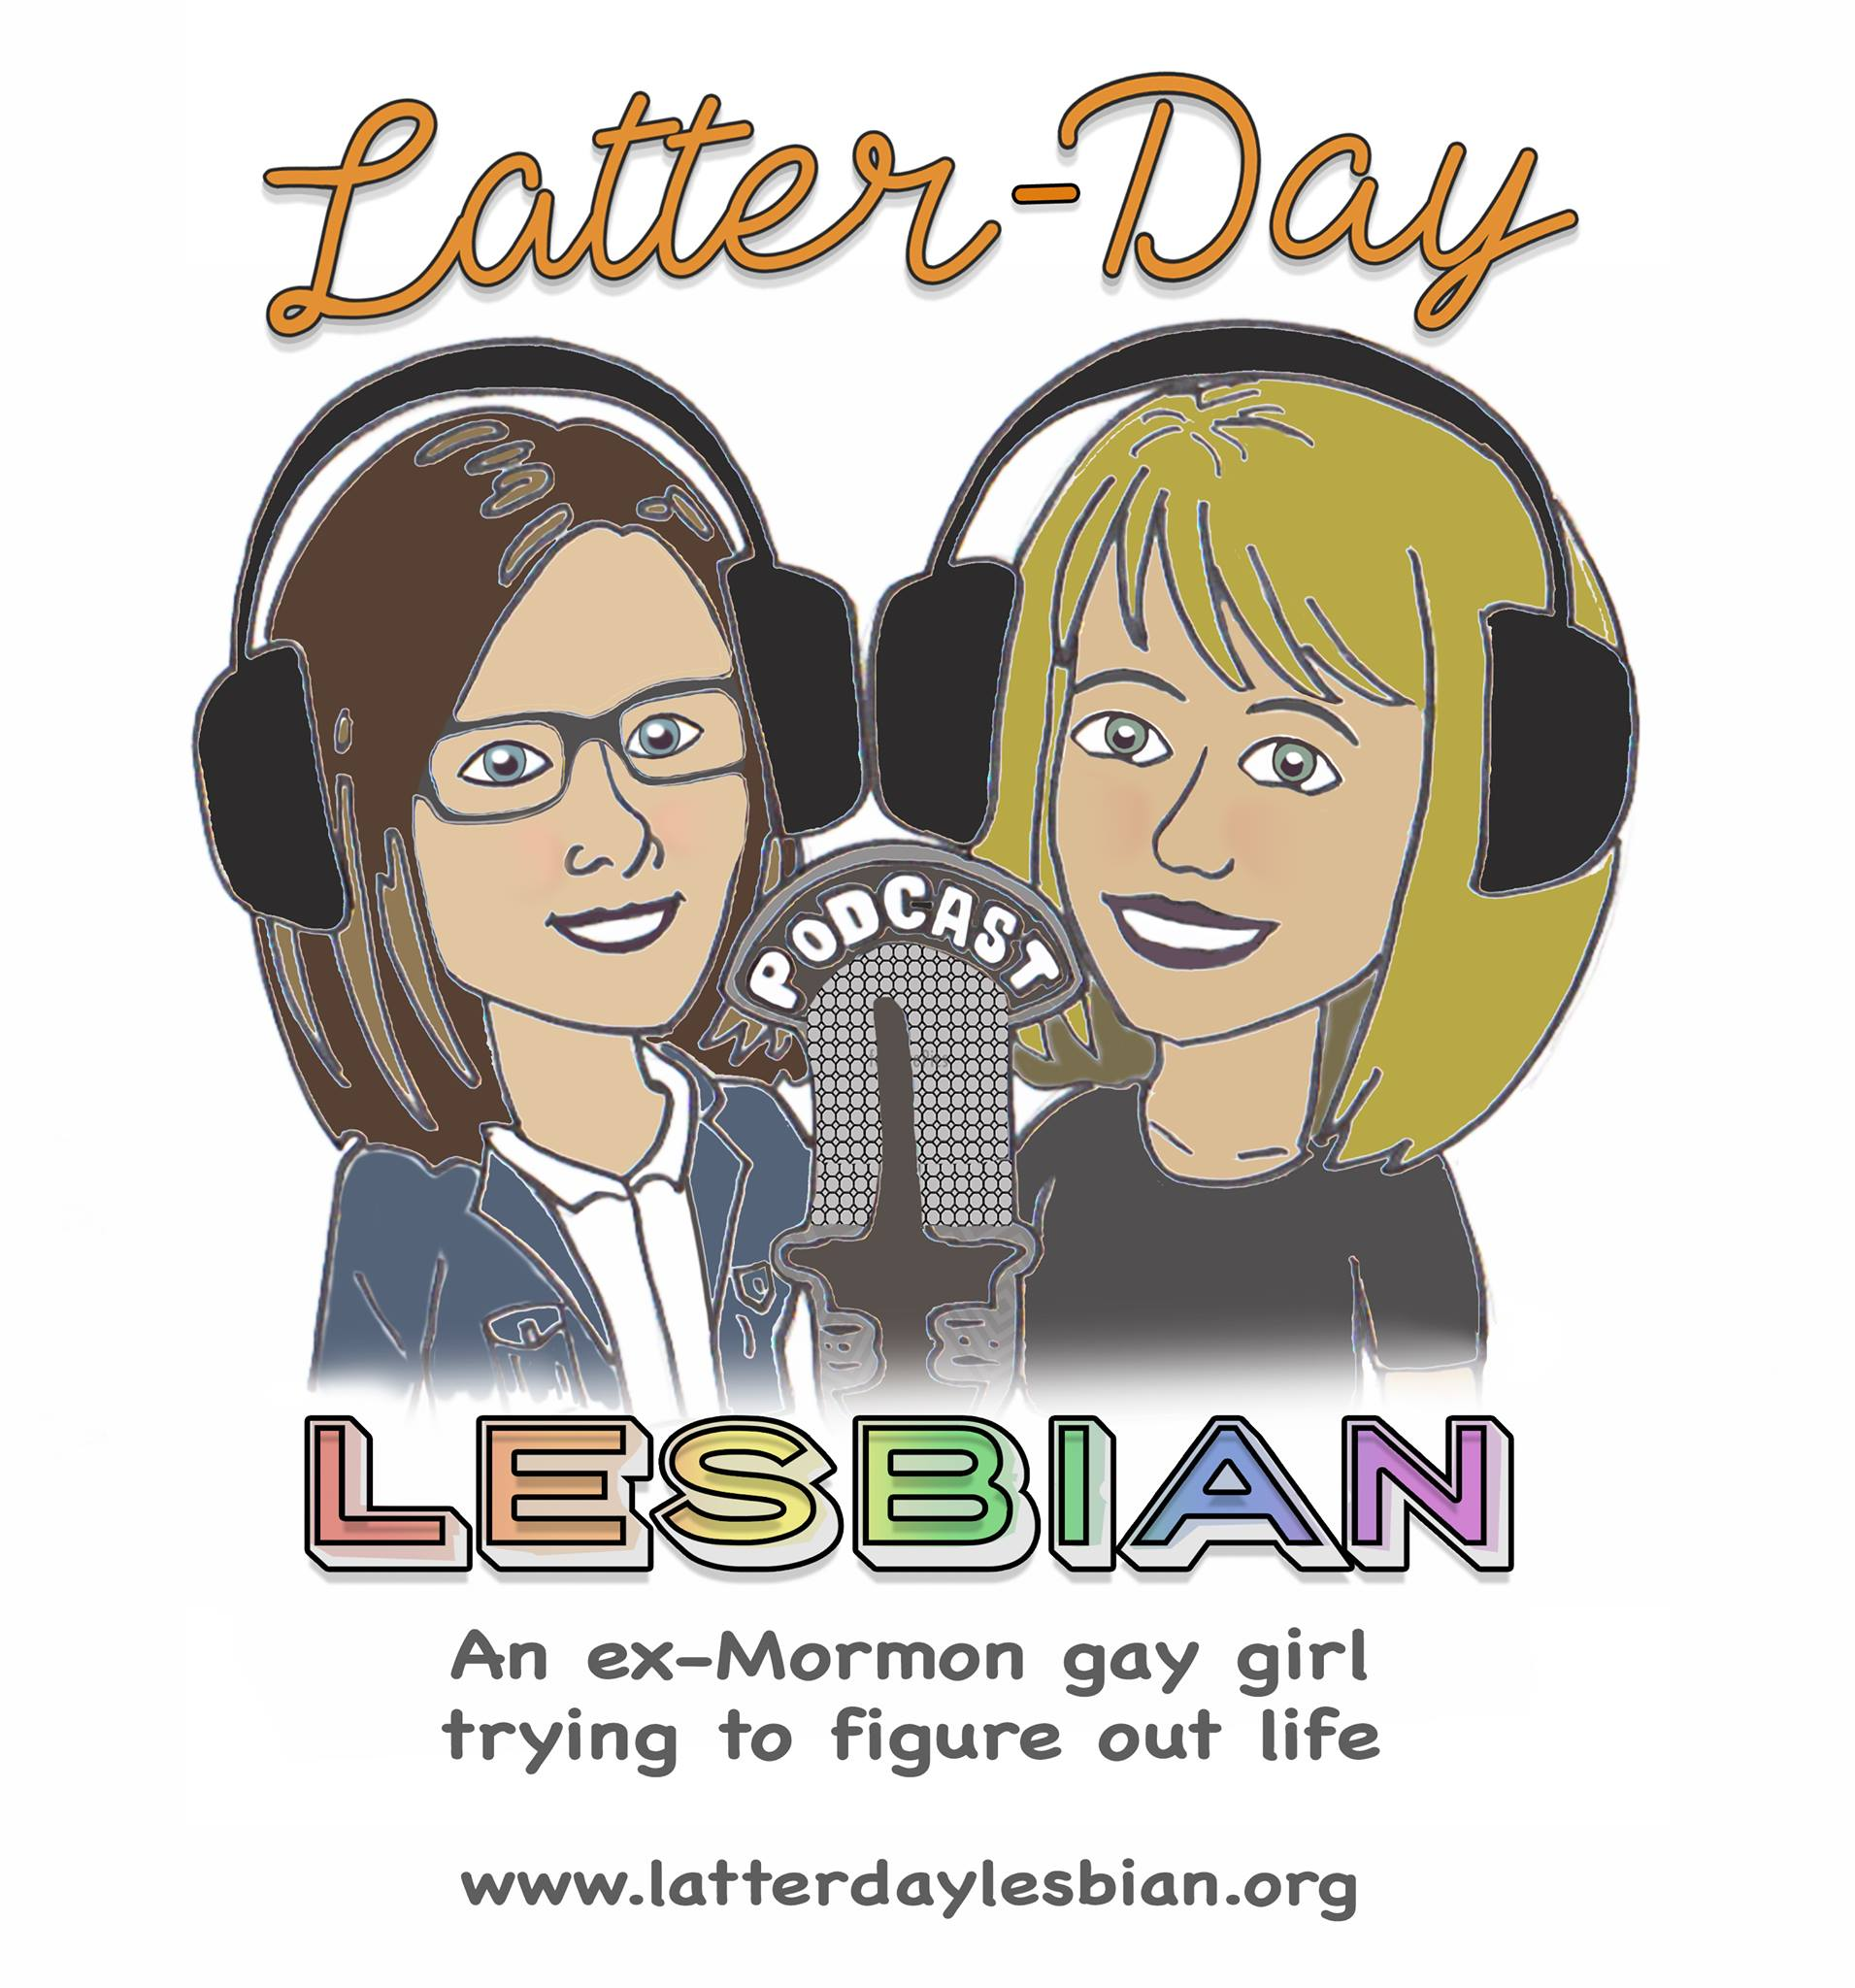 Latter Day Lesbian host, Shelly Johnson, Joins The Brave Files to share her story of leaving the Mormon Church, coming out and living life on her own terms!